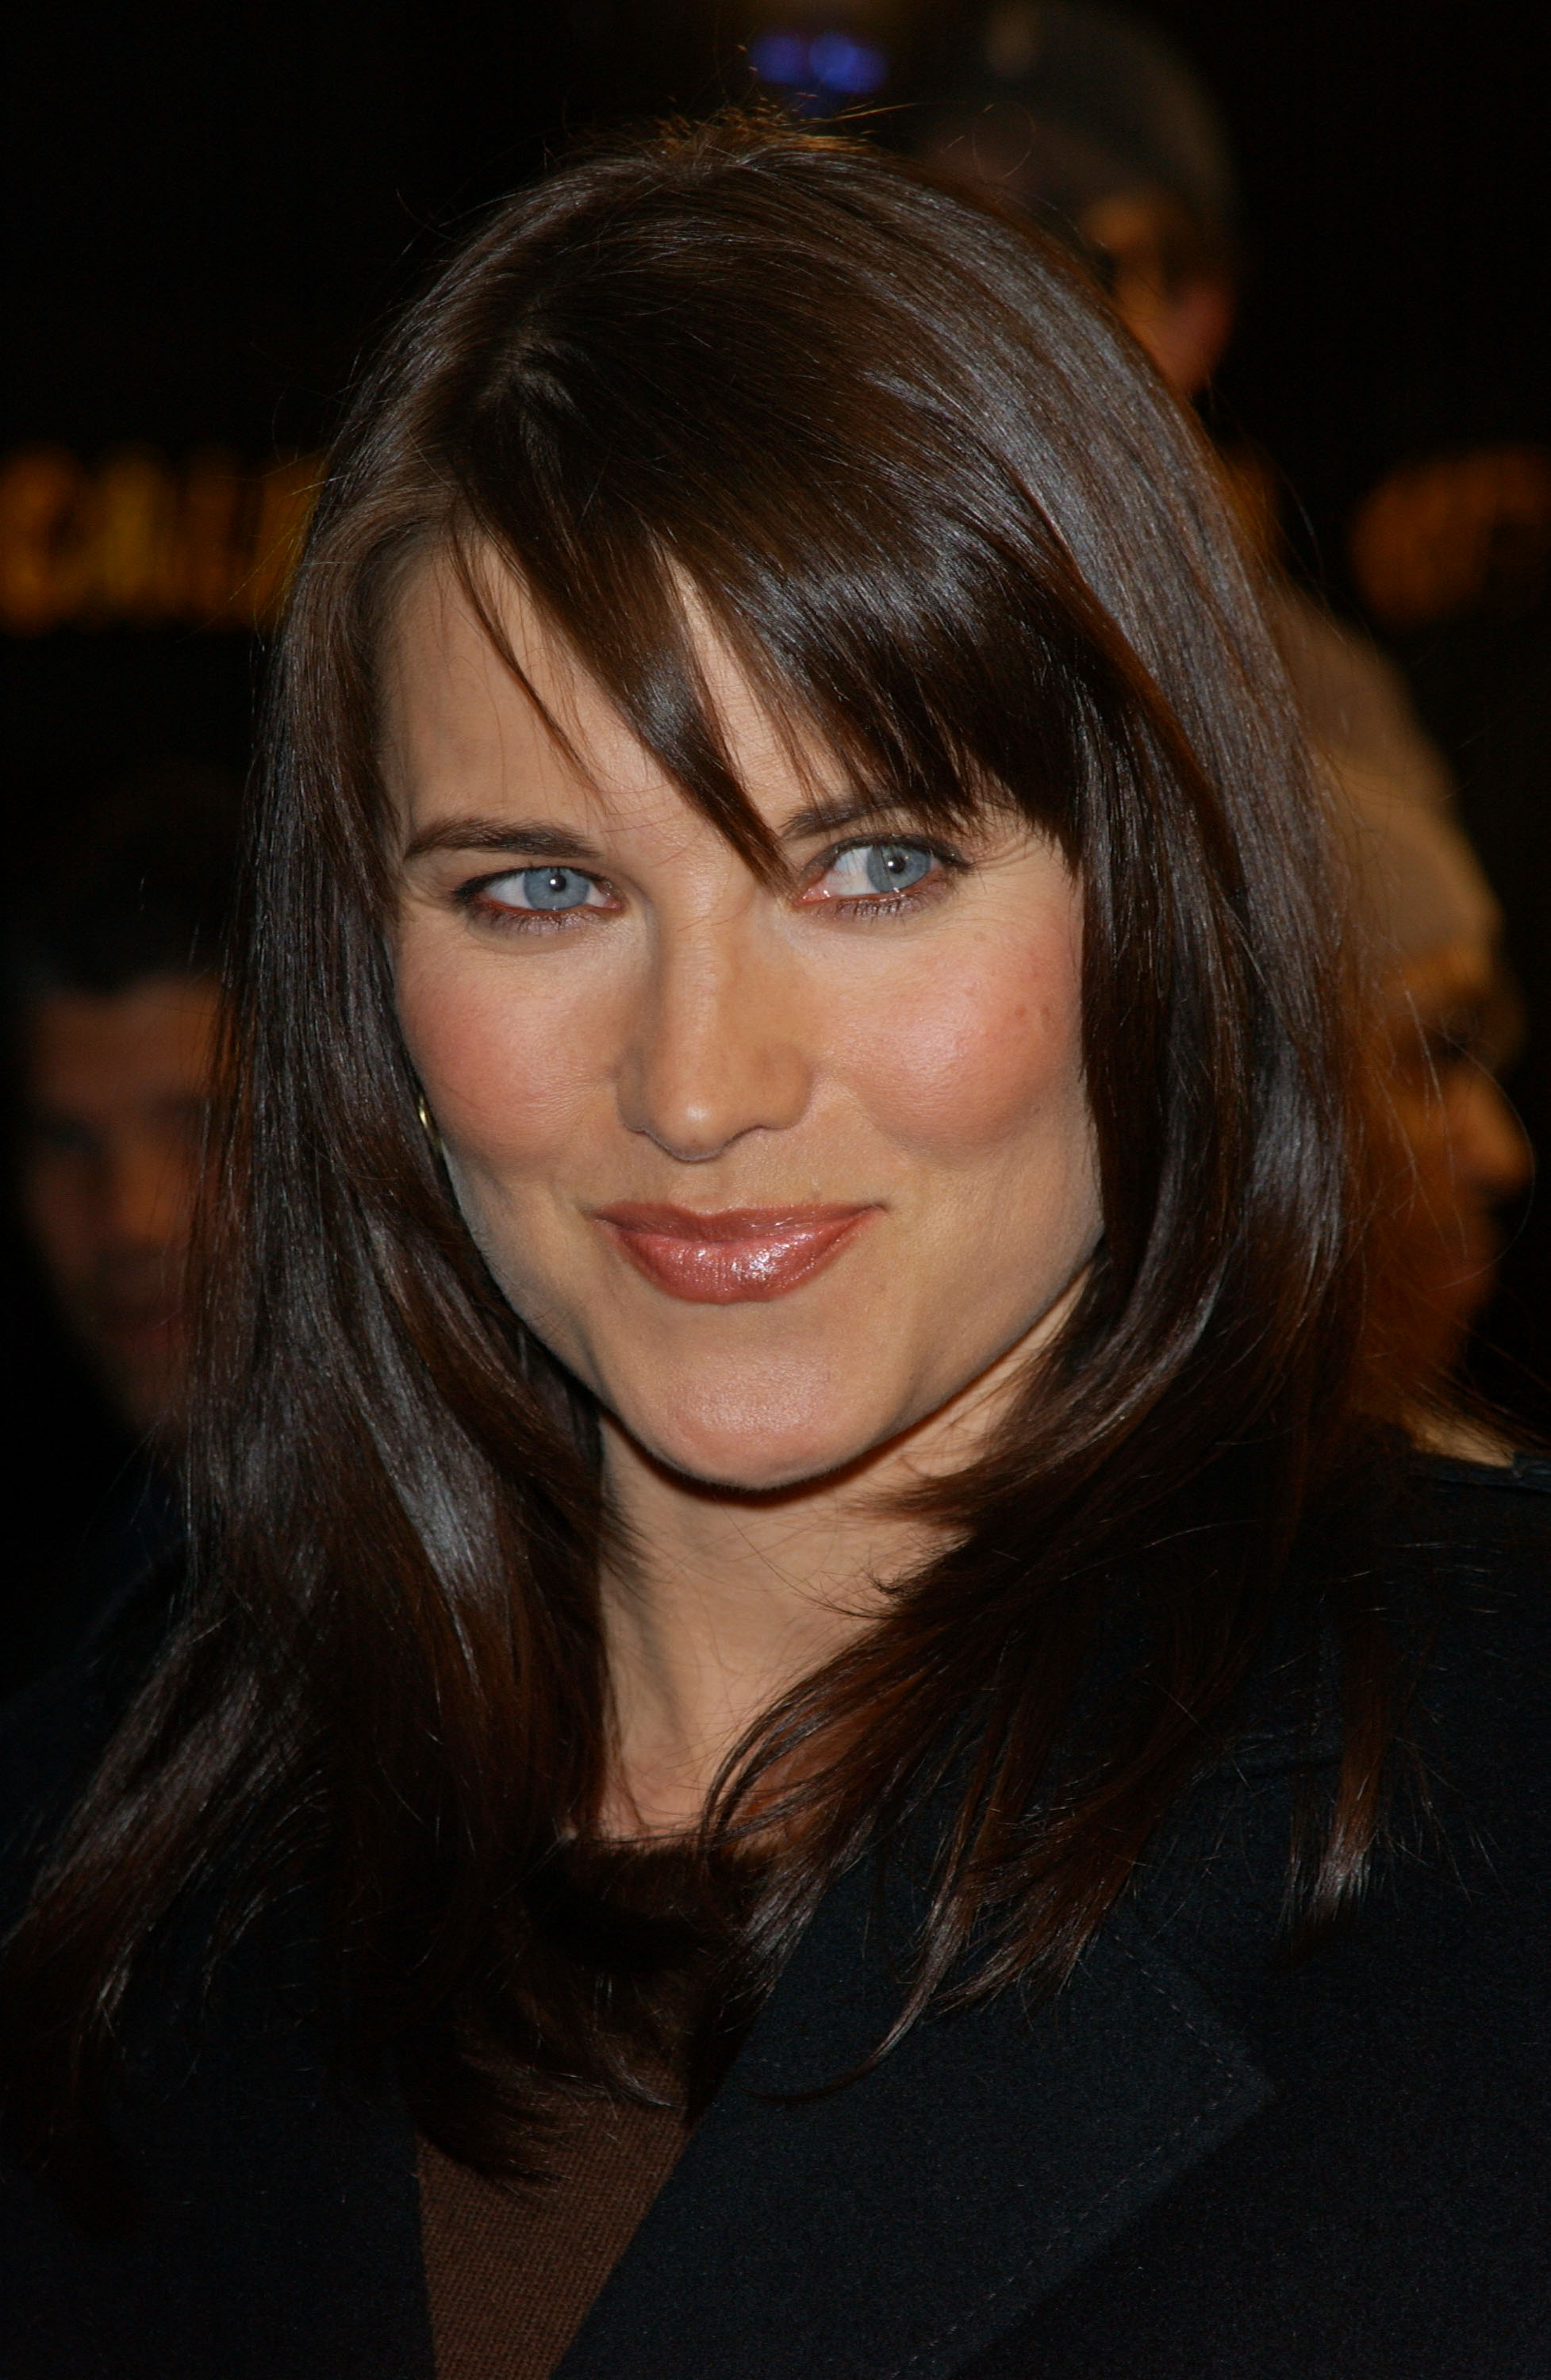 Lucy Lawless Photo 73 Of 114 Pics Wallpaper Photo